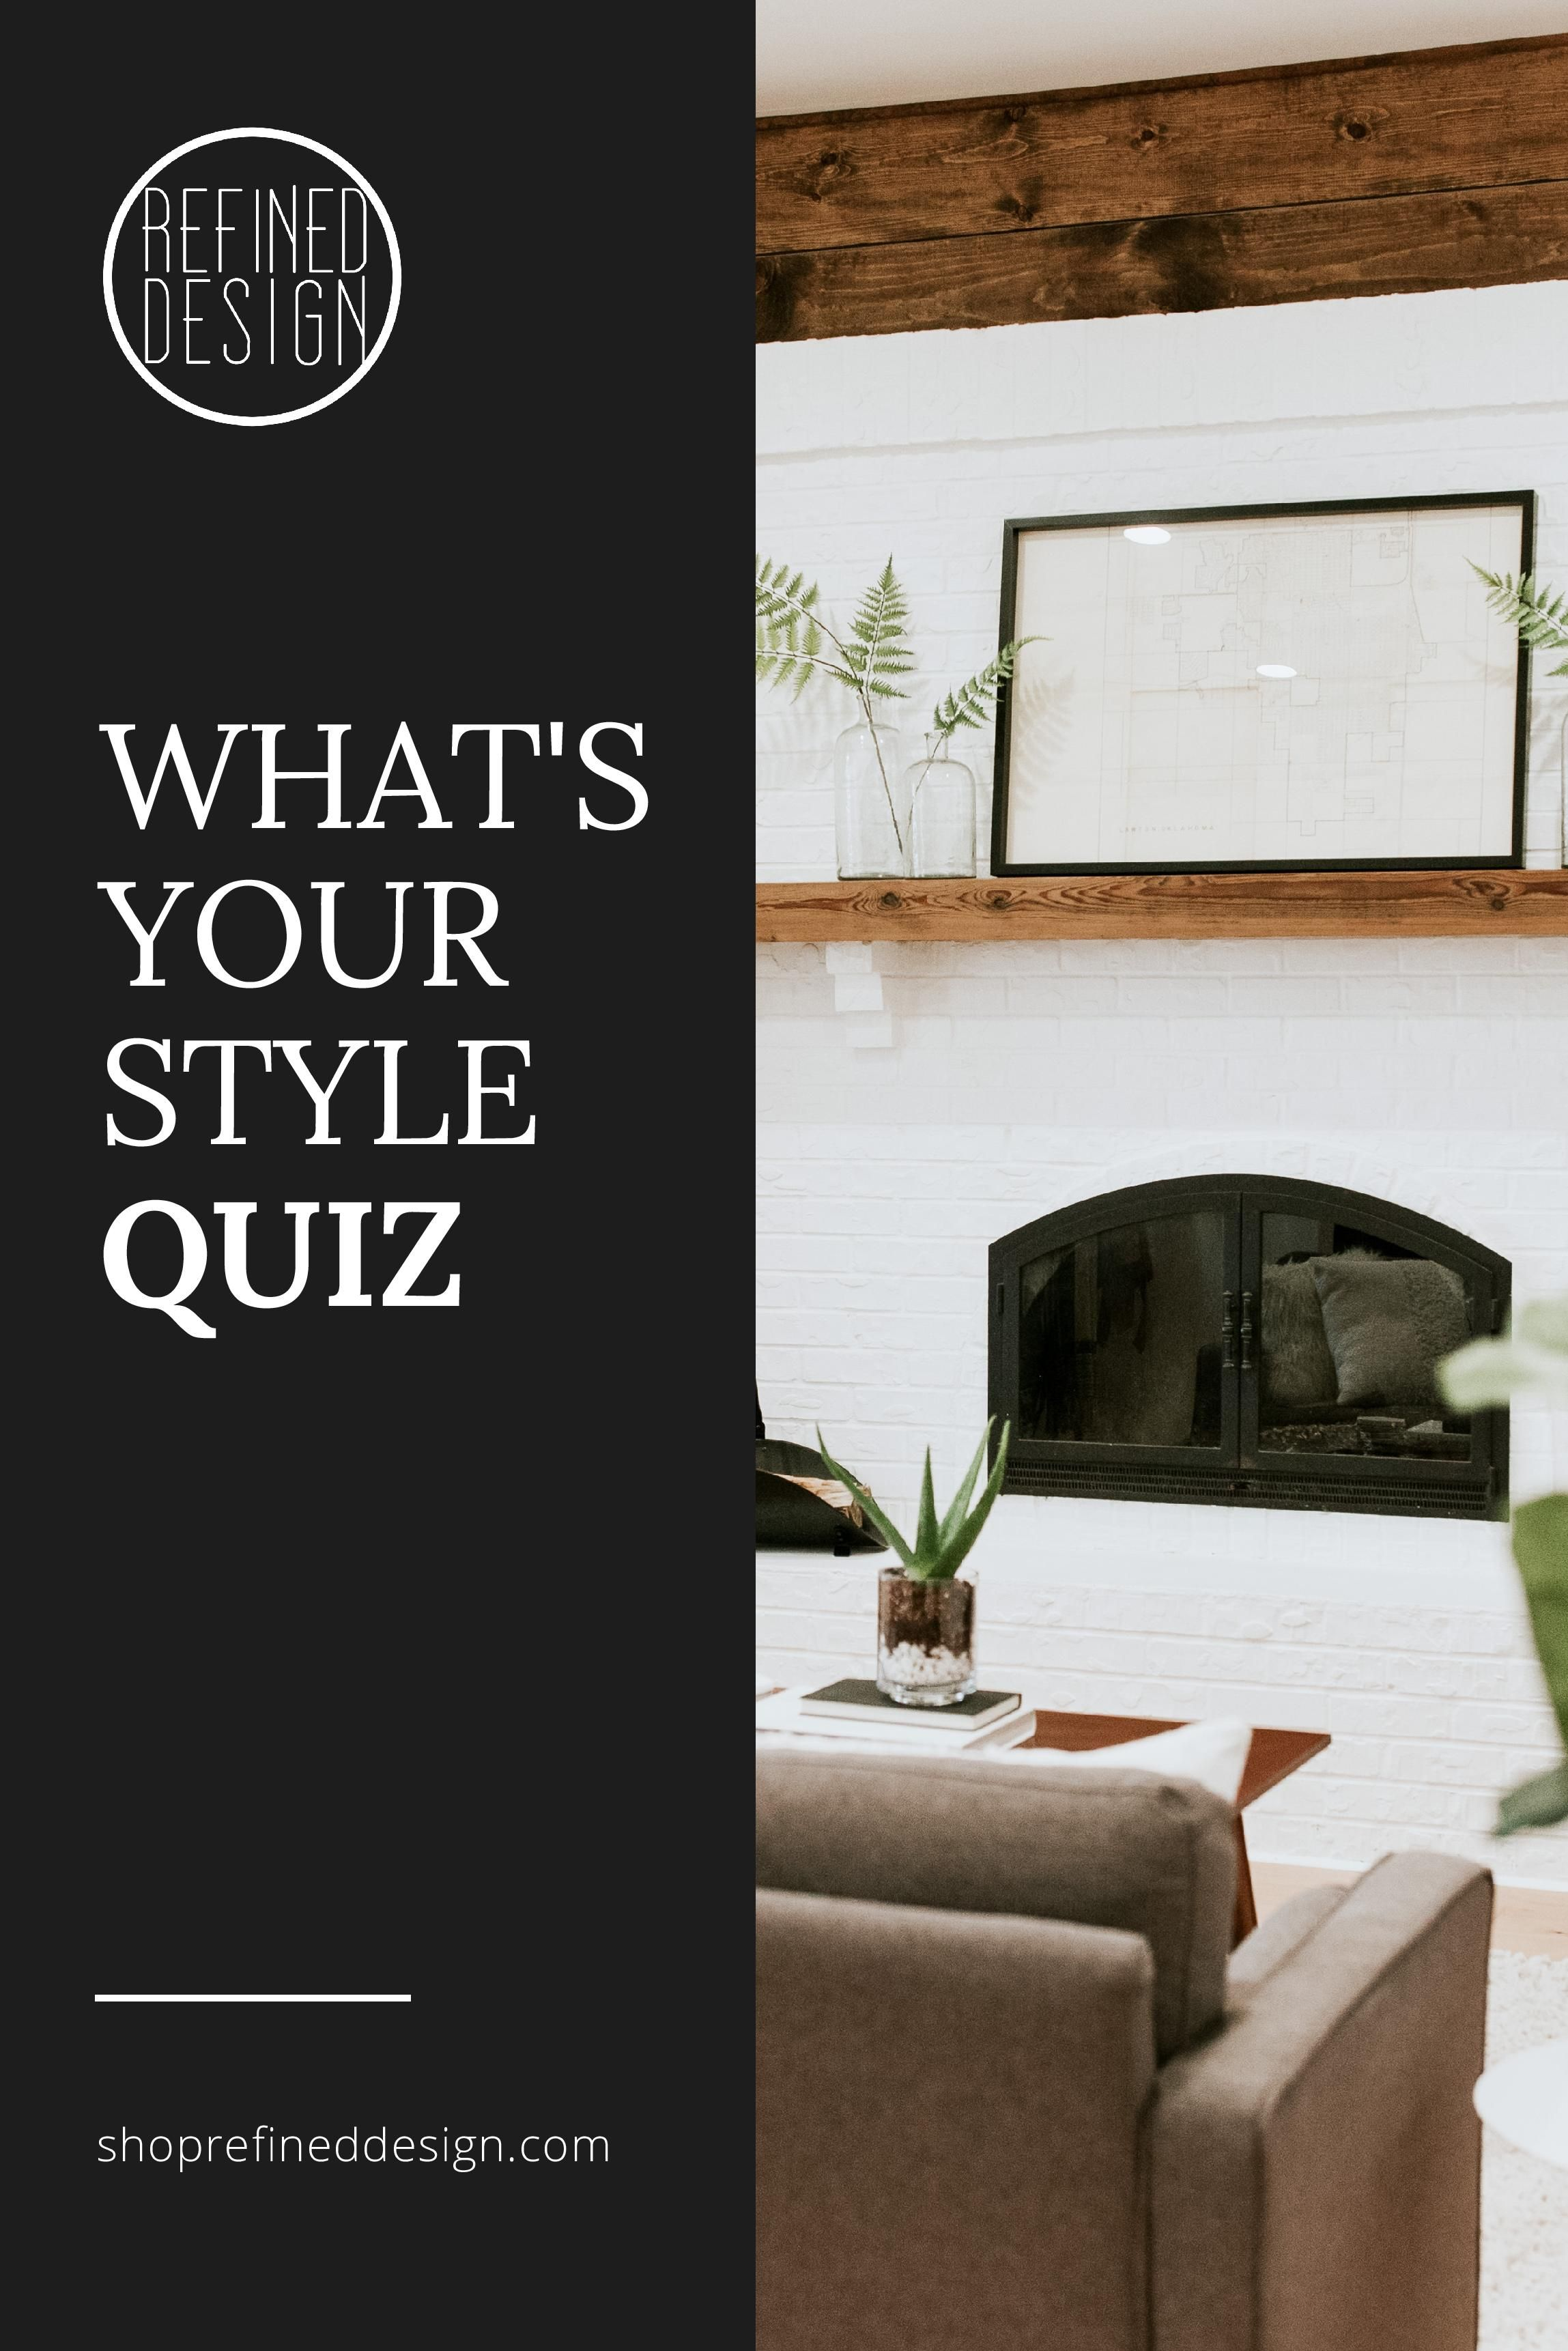 What is your home decorating style quiz